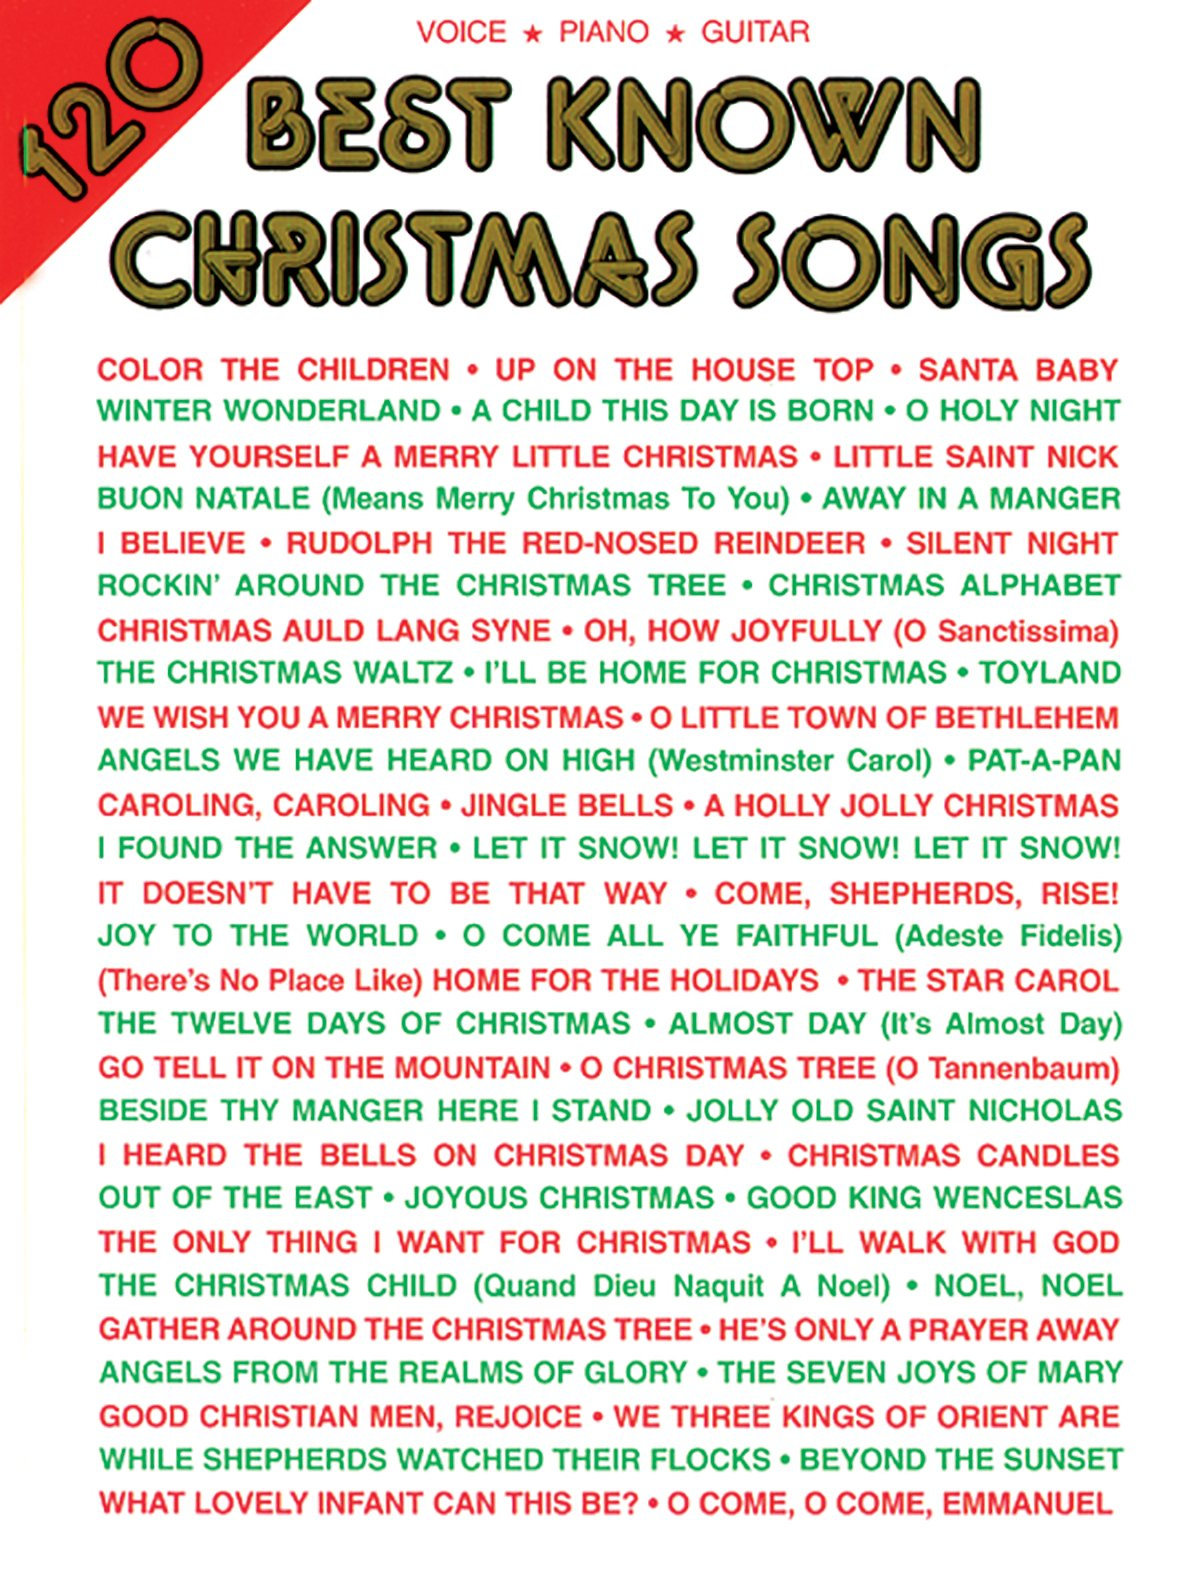 120 best known christmas songs pianovocalguitar alfred music 9781576235393 amazoncom books - Best Christmas Music